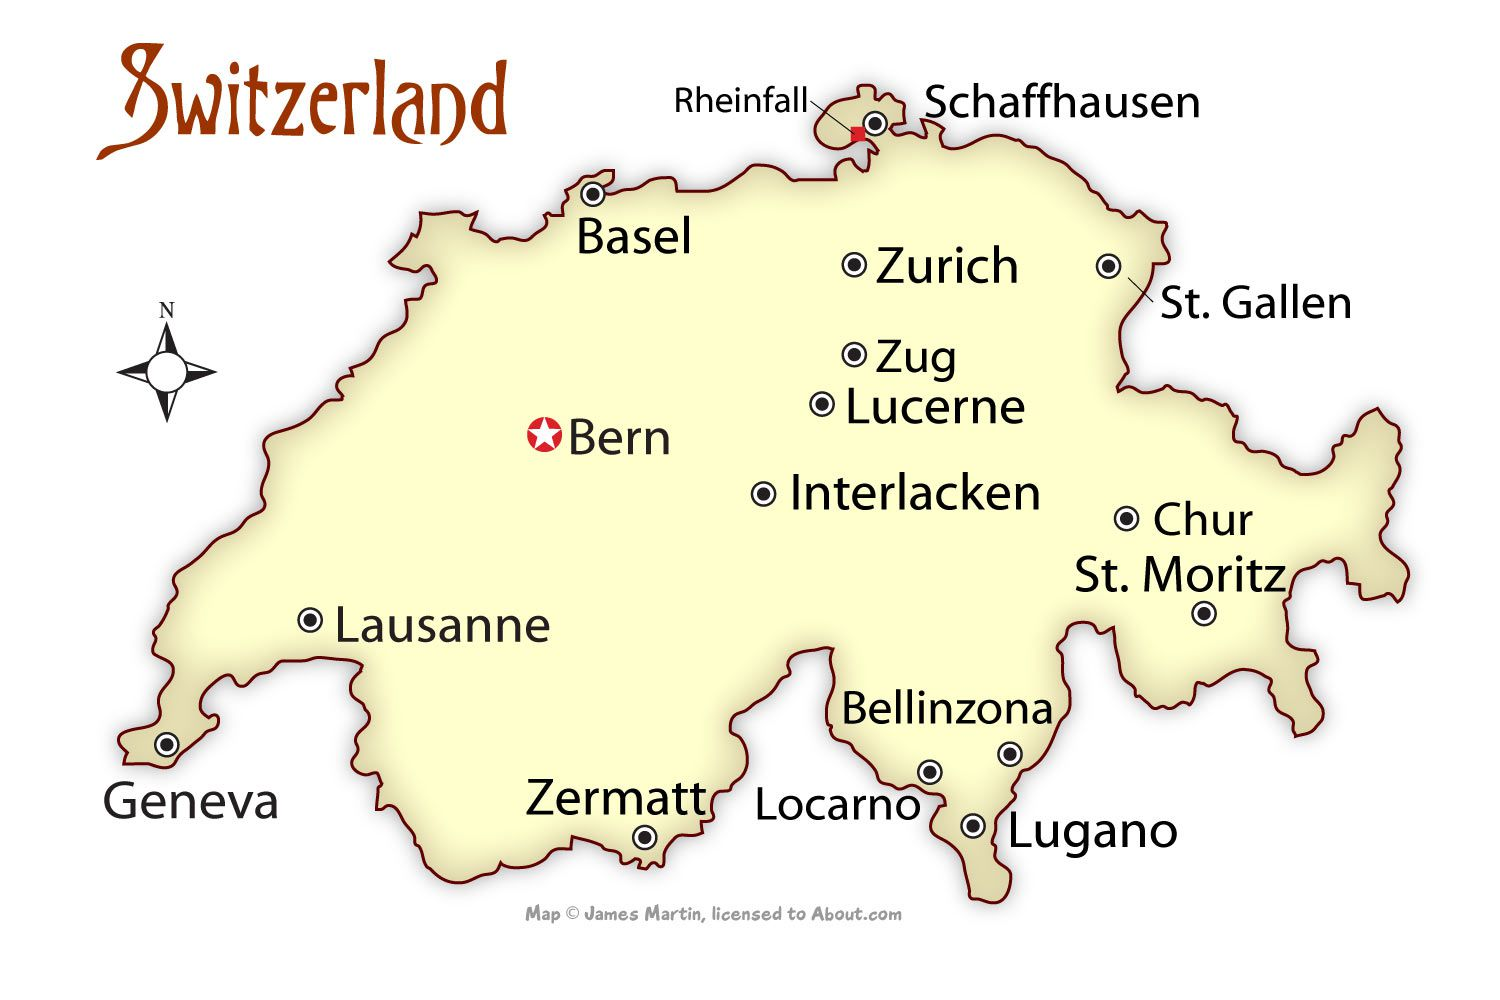 Switzerland Cities Map And Travel Guide - Austria major cities map